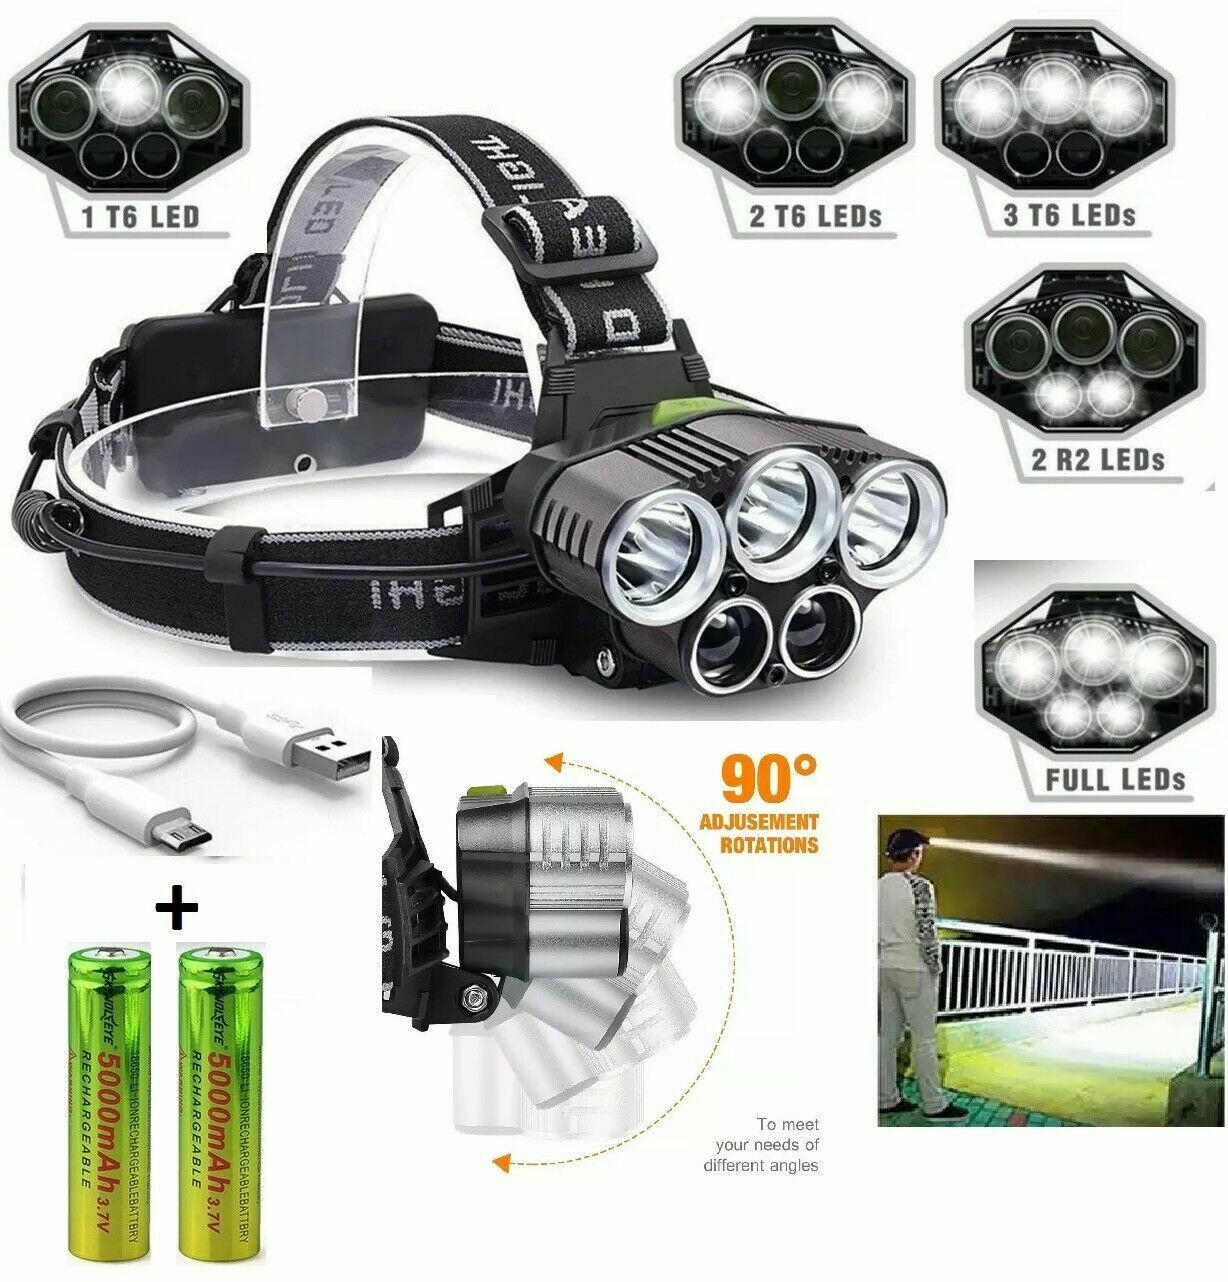 250000LM 5X T6 LED Headlamp Rechargeable Head Light Flashlight Torch Lamp USA Camping & Hiking